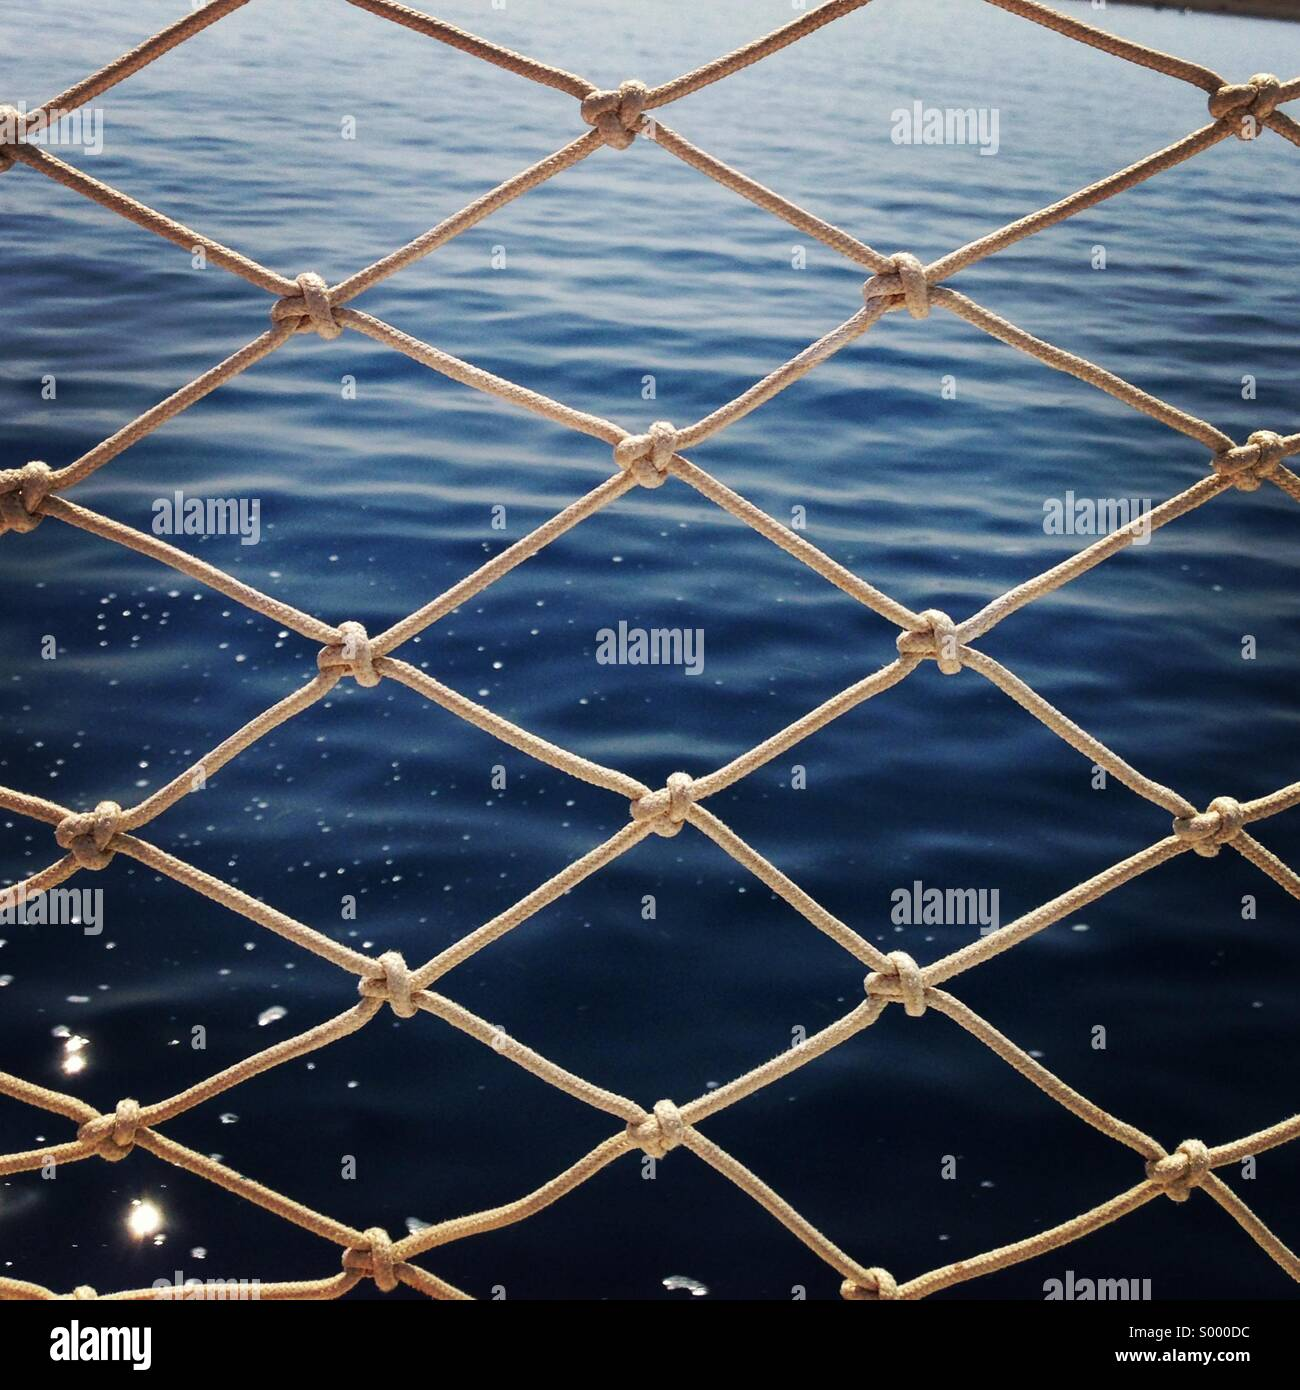 Netting and sea water - Stock Image